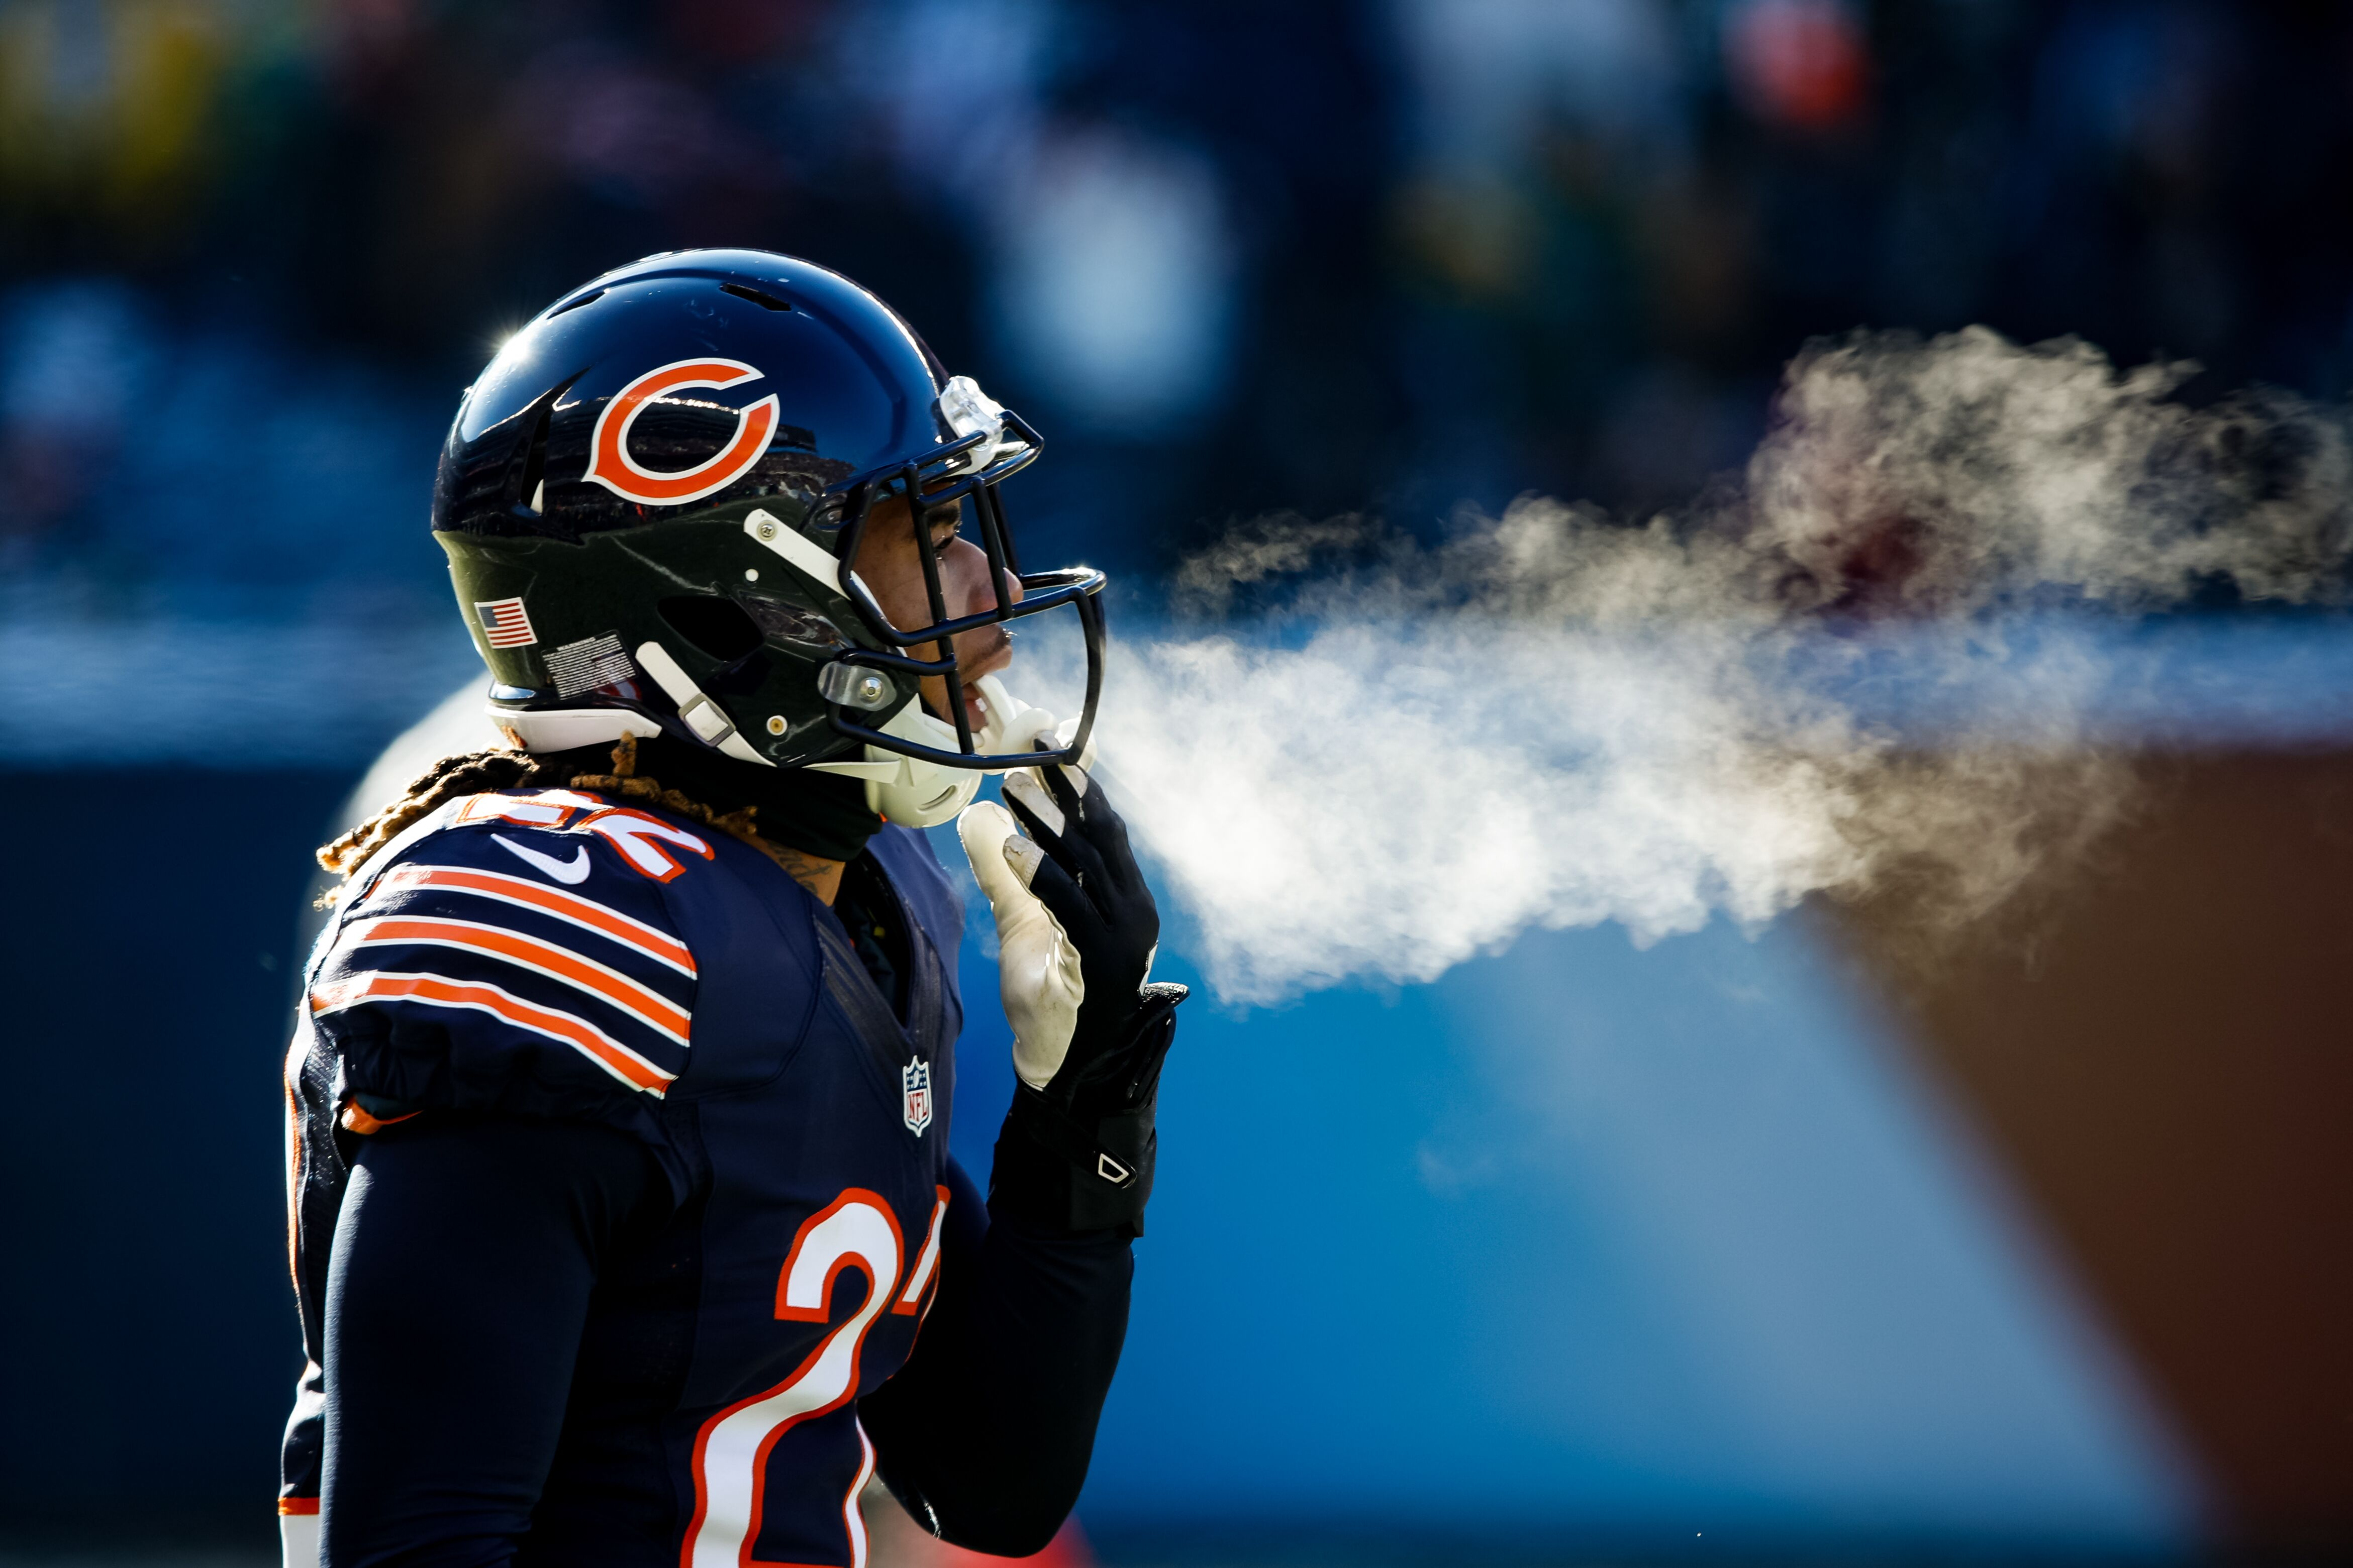 Chicago Bears Roster Cuts: Who Were the Big Surprises?